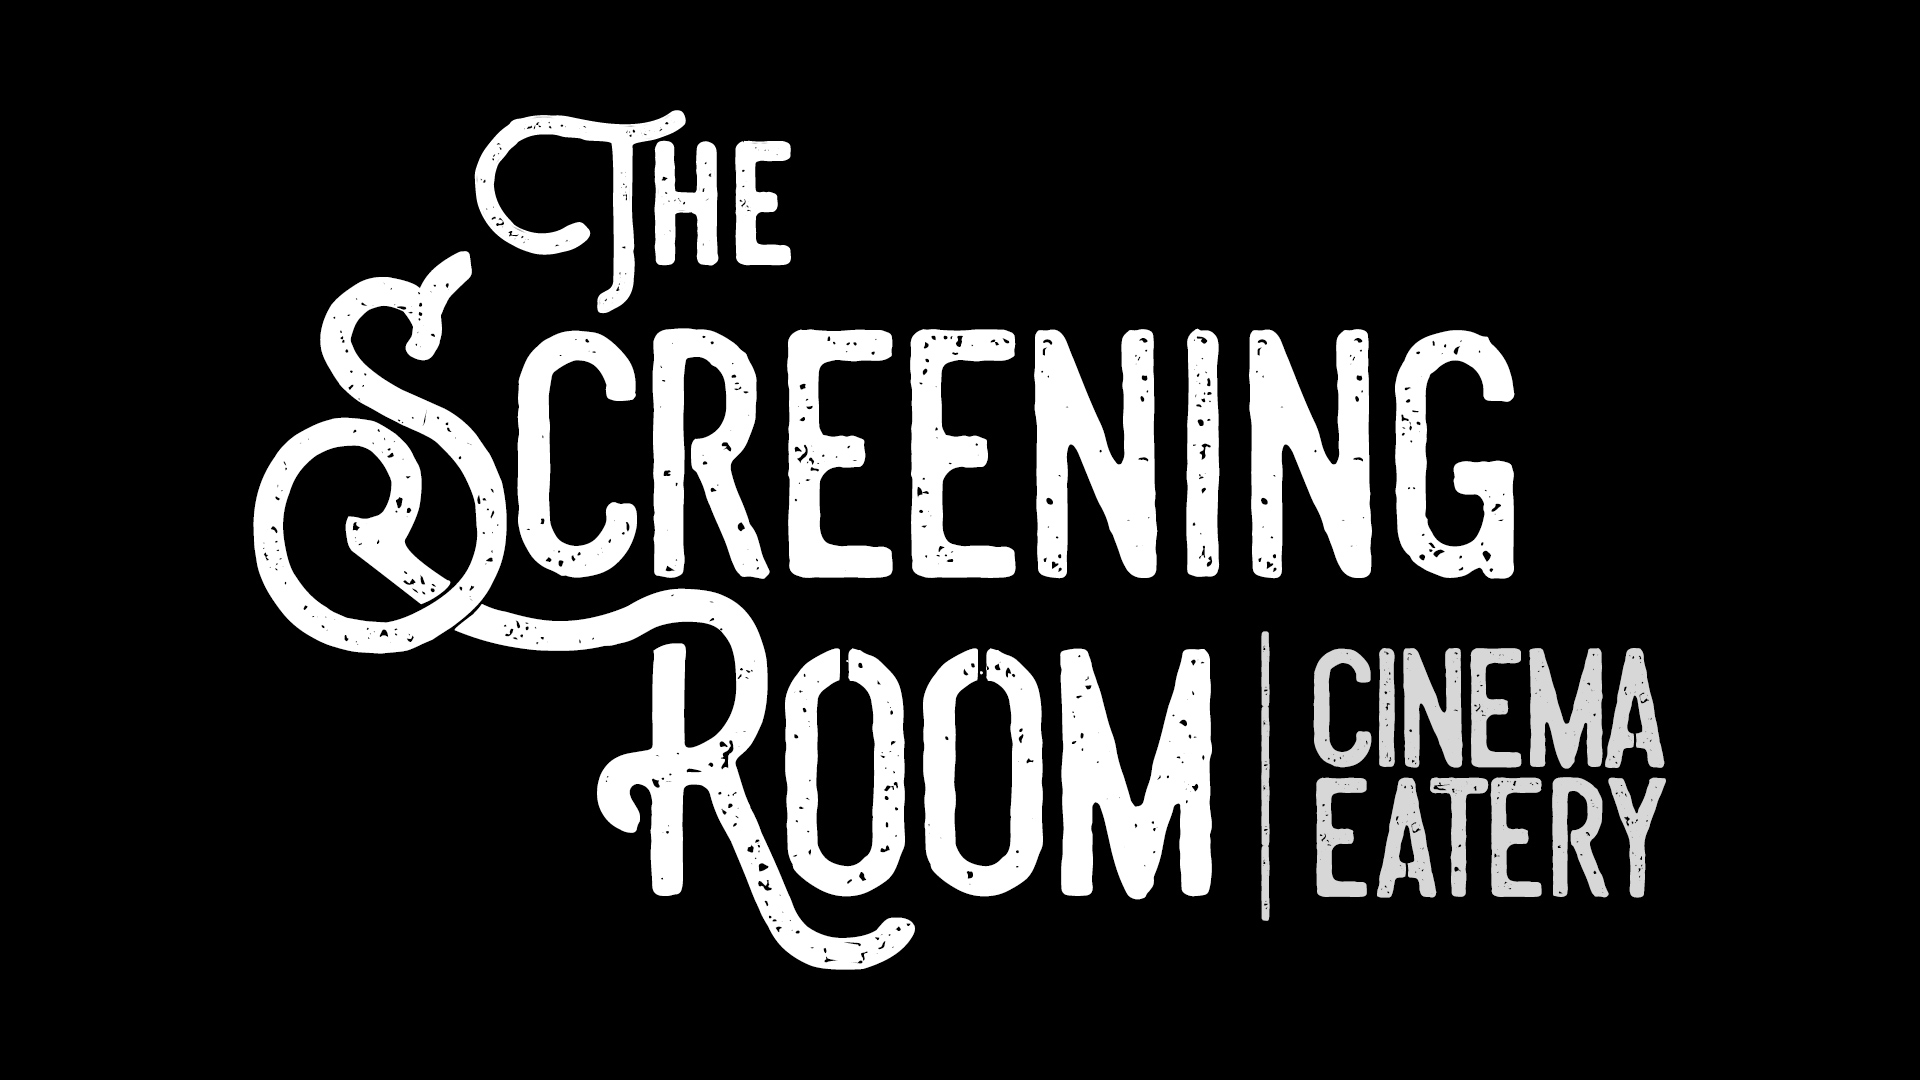 screening-room-logo-final-extra-stacked-distressed-reverse-1920x1080 VERY LARGE.jpg